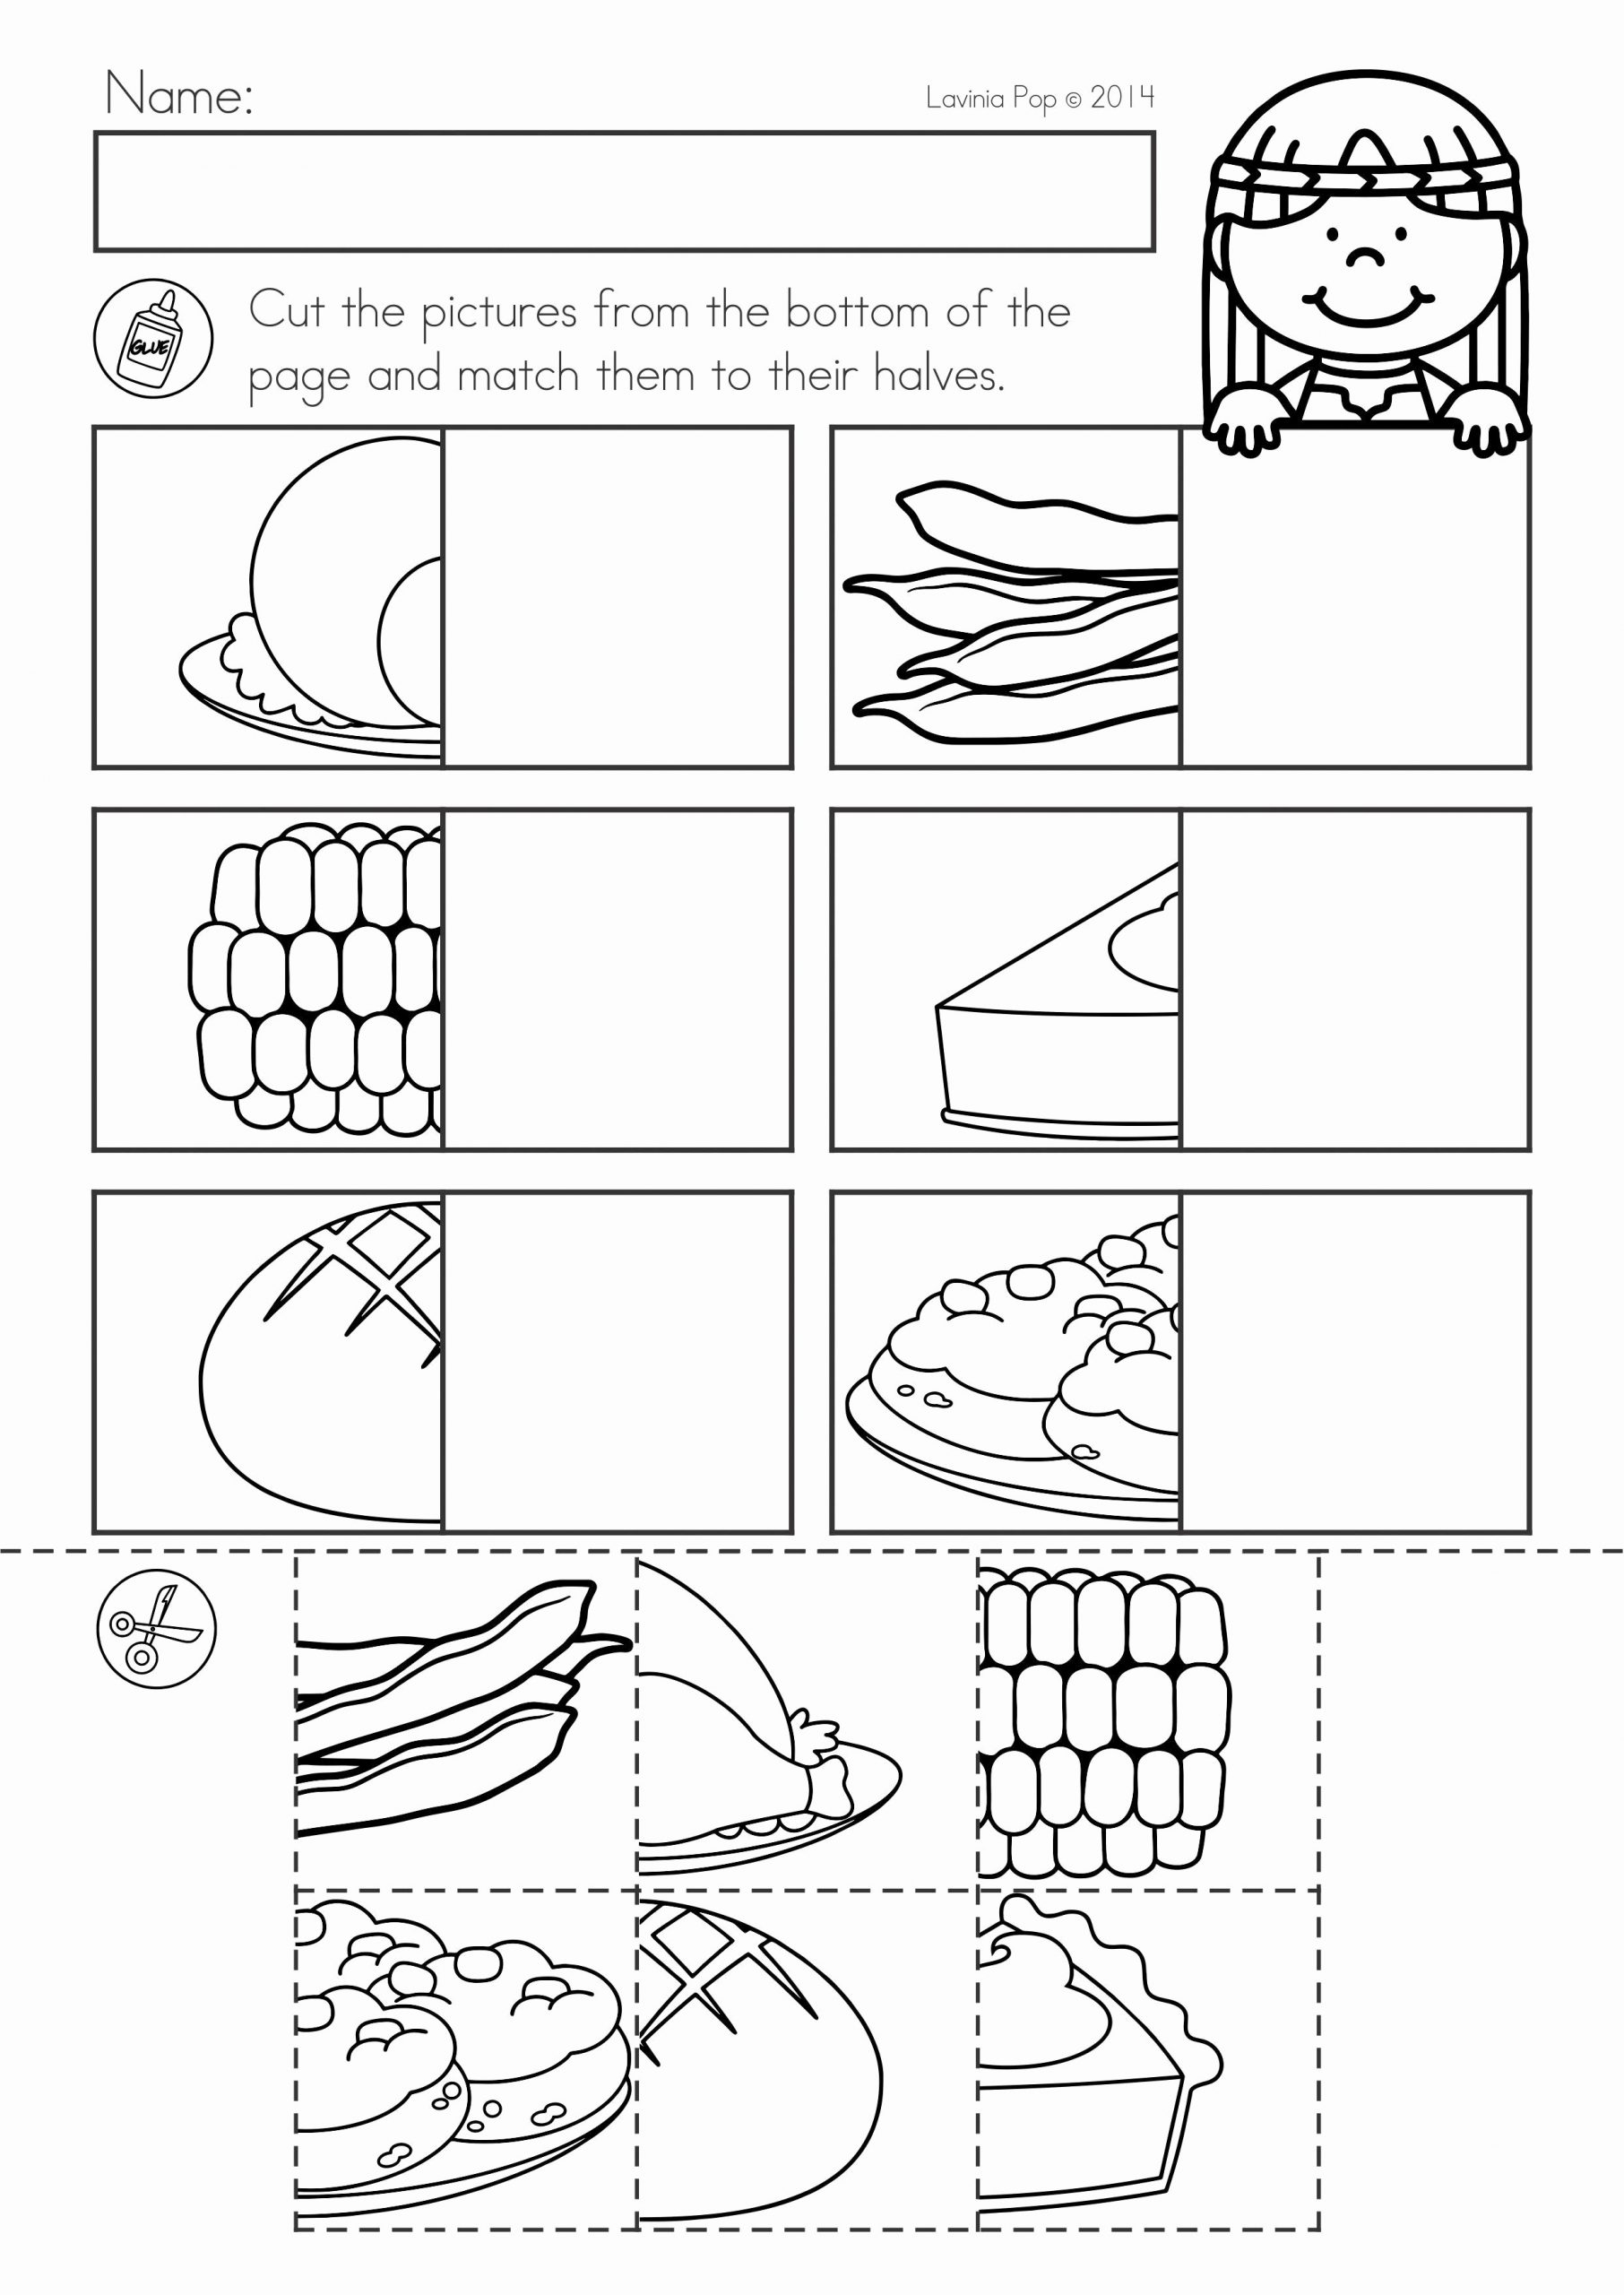 Kindergarten Nutrition Worksheets New Buy Nutrition Supplements Fruitnutritionfacts